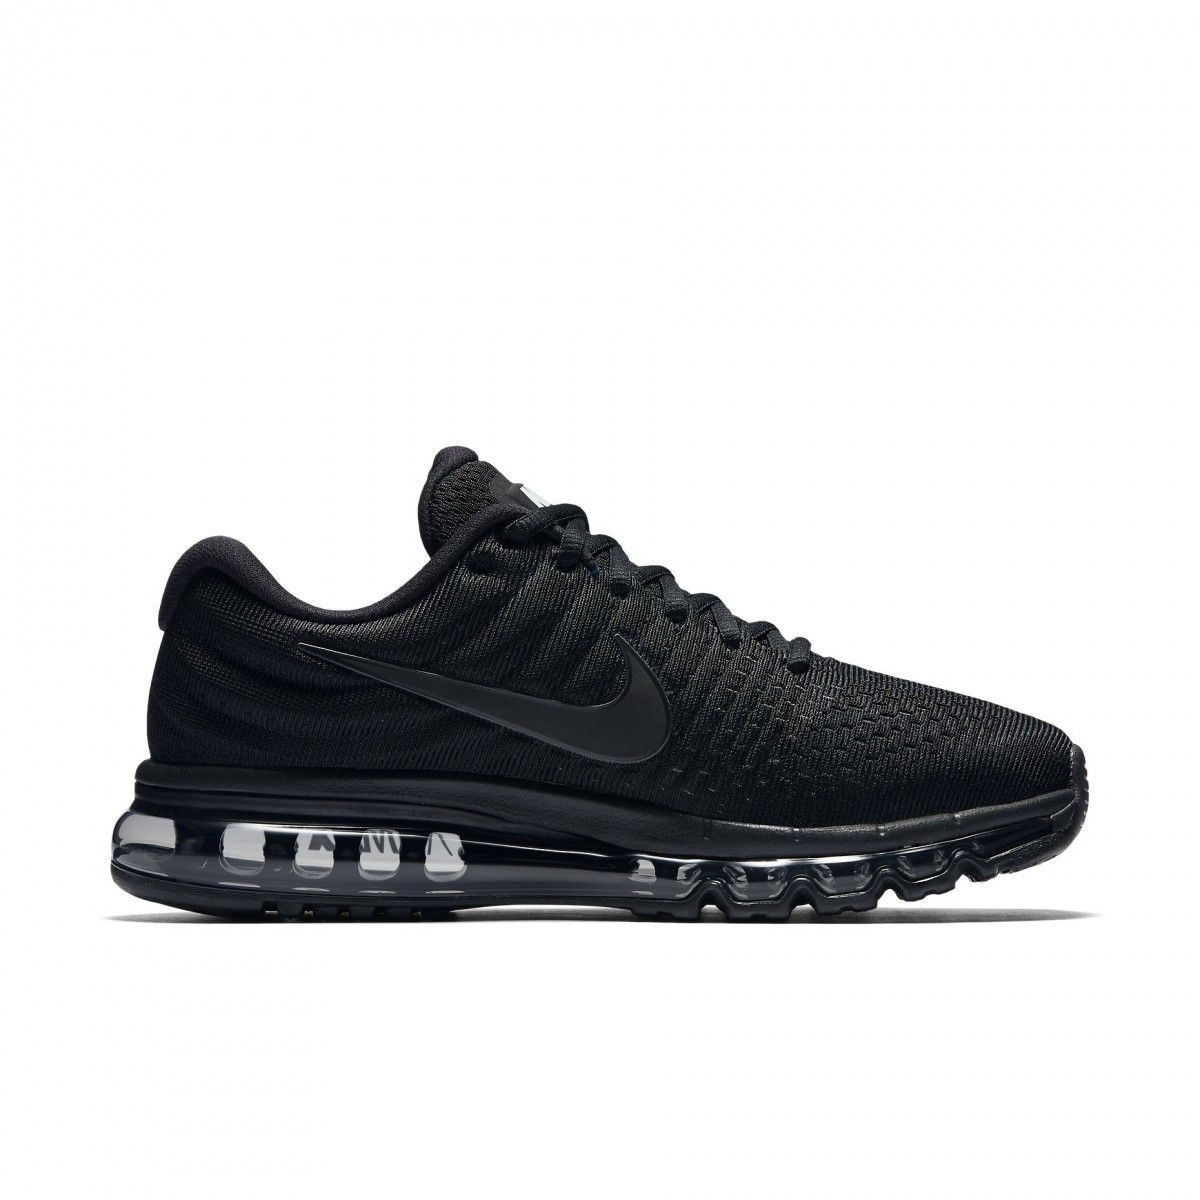 huge selection of 6a9ed 0c0ef Baskets Nike Air Max 2017 Noir Homme - Taille   42 43 44 45 46 40 41 47